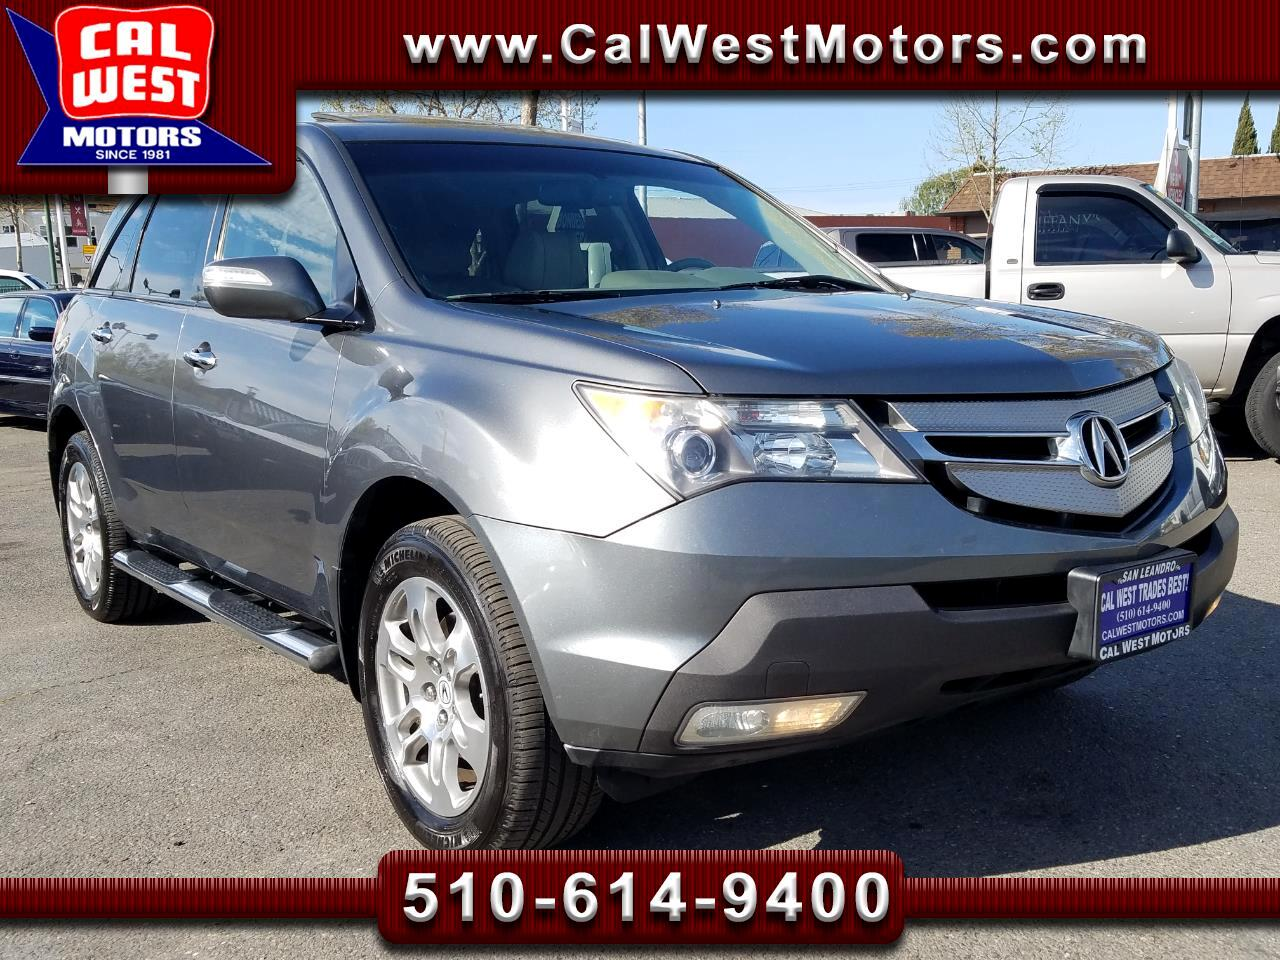 2008 Acura MDX AWD TechPkg DVD NAV 1Owner SuperClean ExMtnce